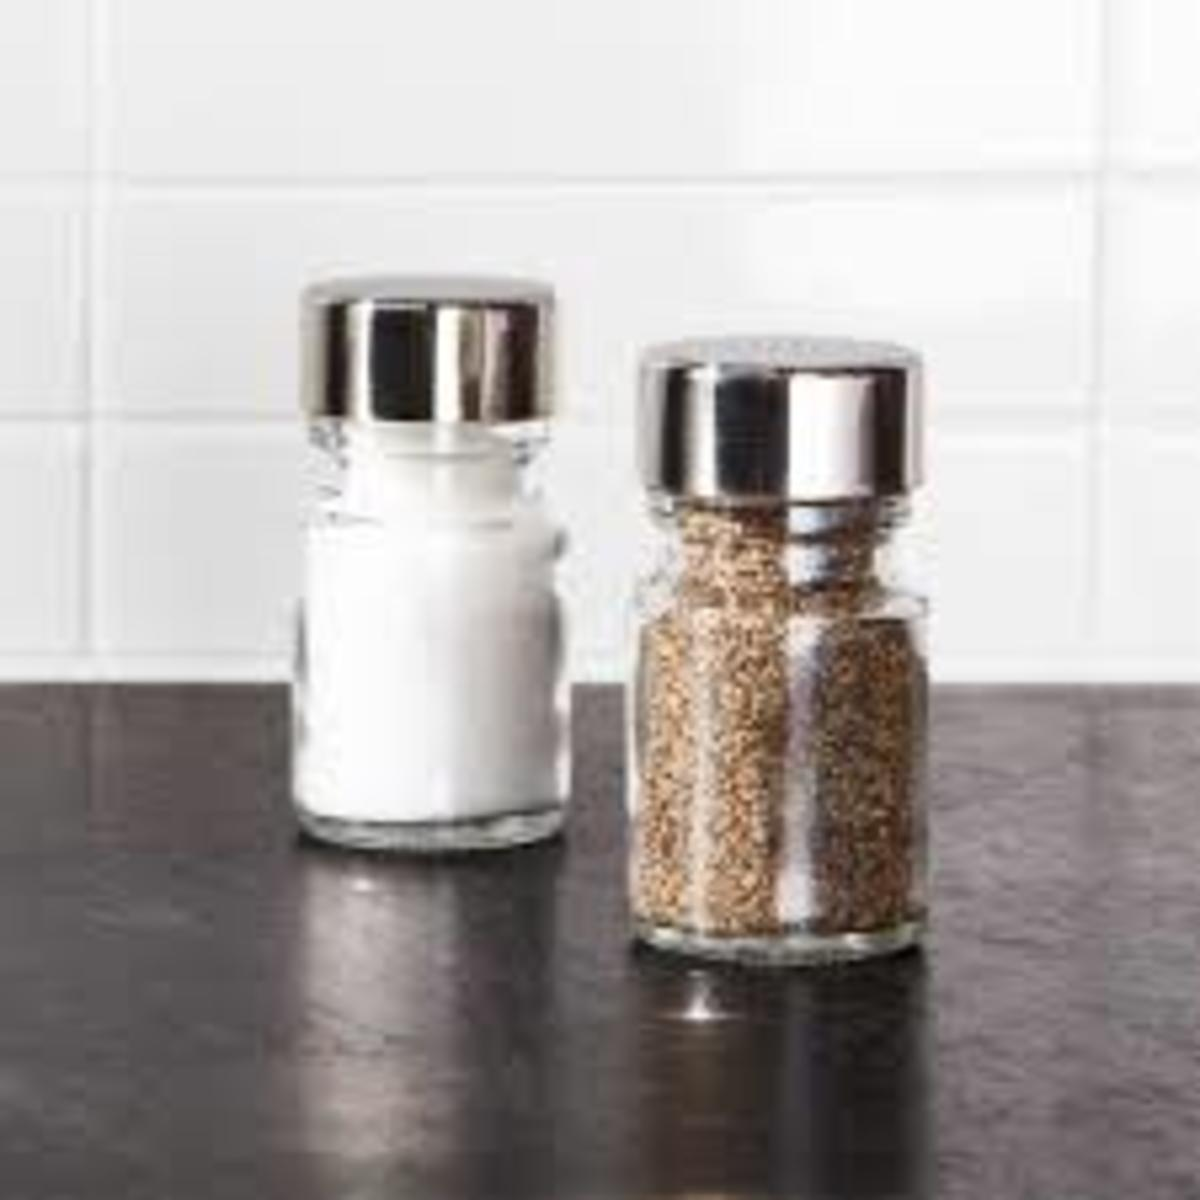 strength-and-courage-mix-like-salt-and-pepper